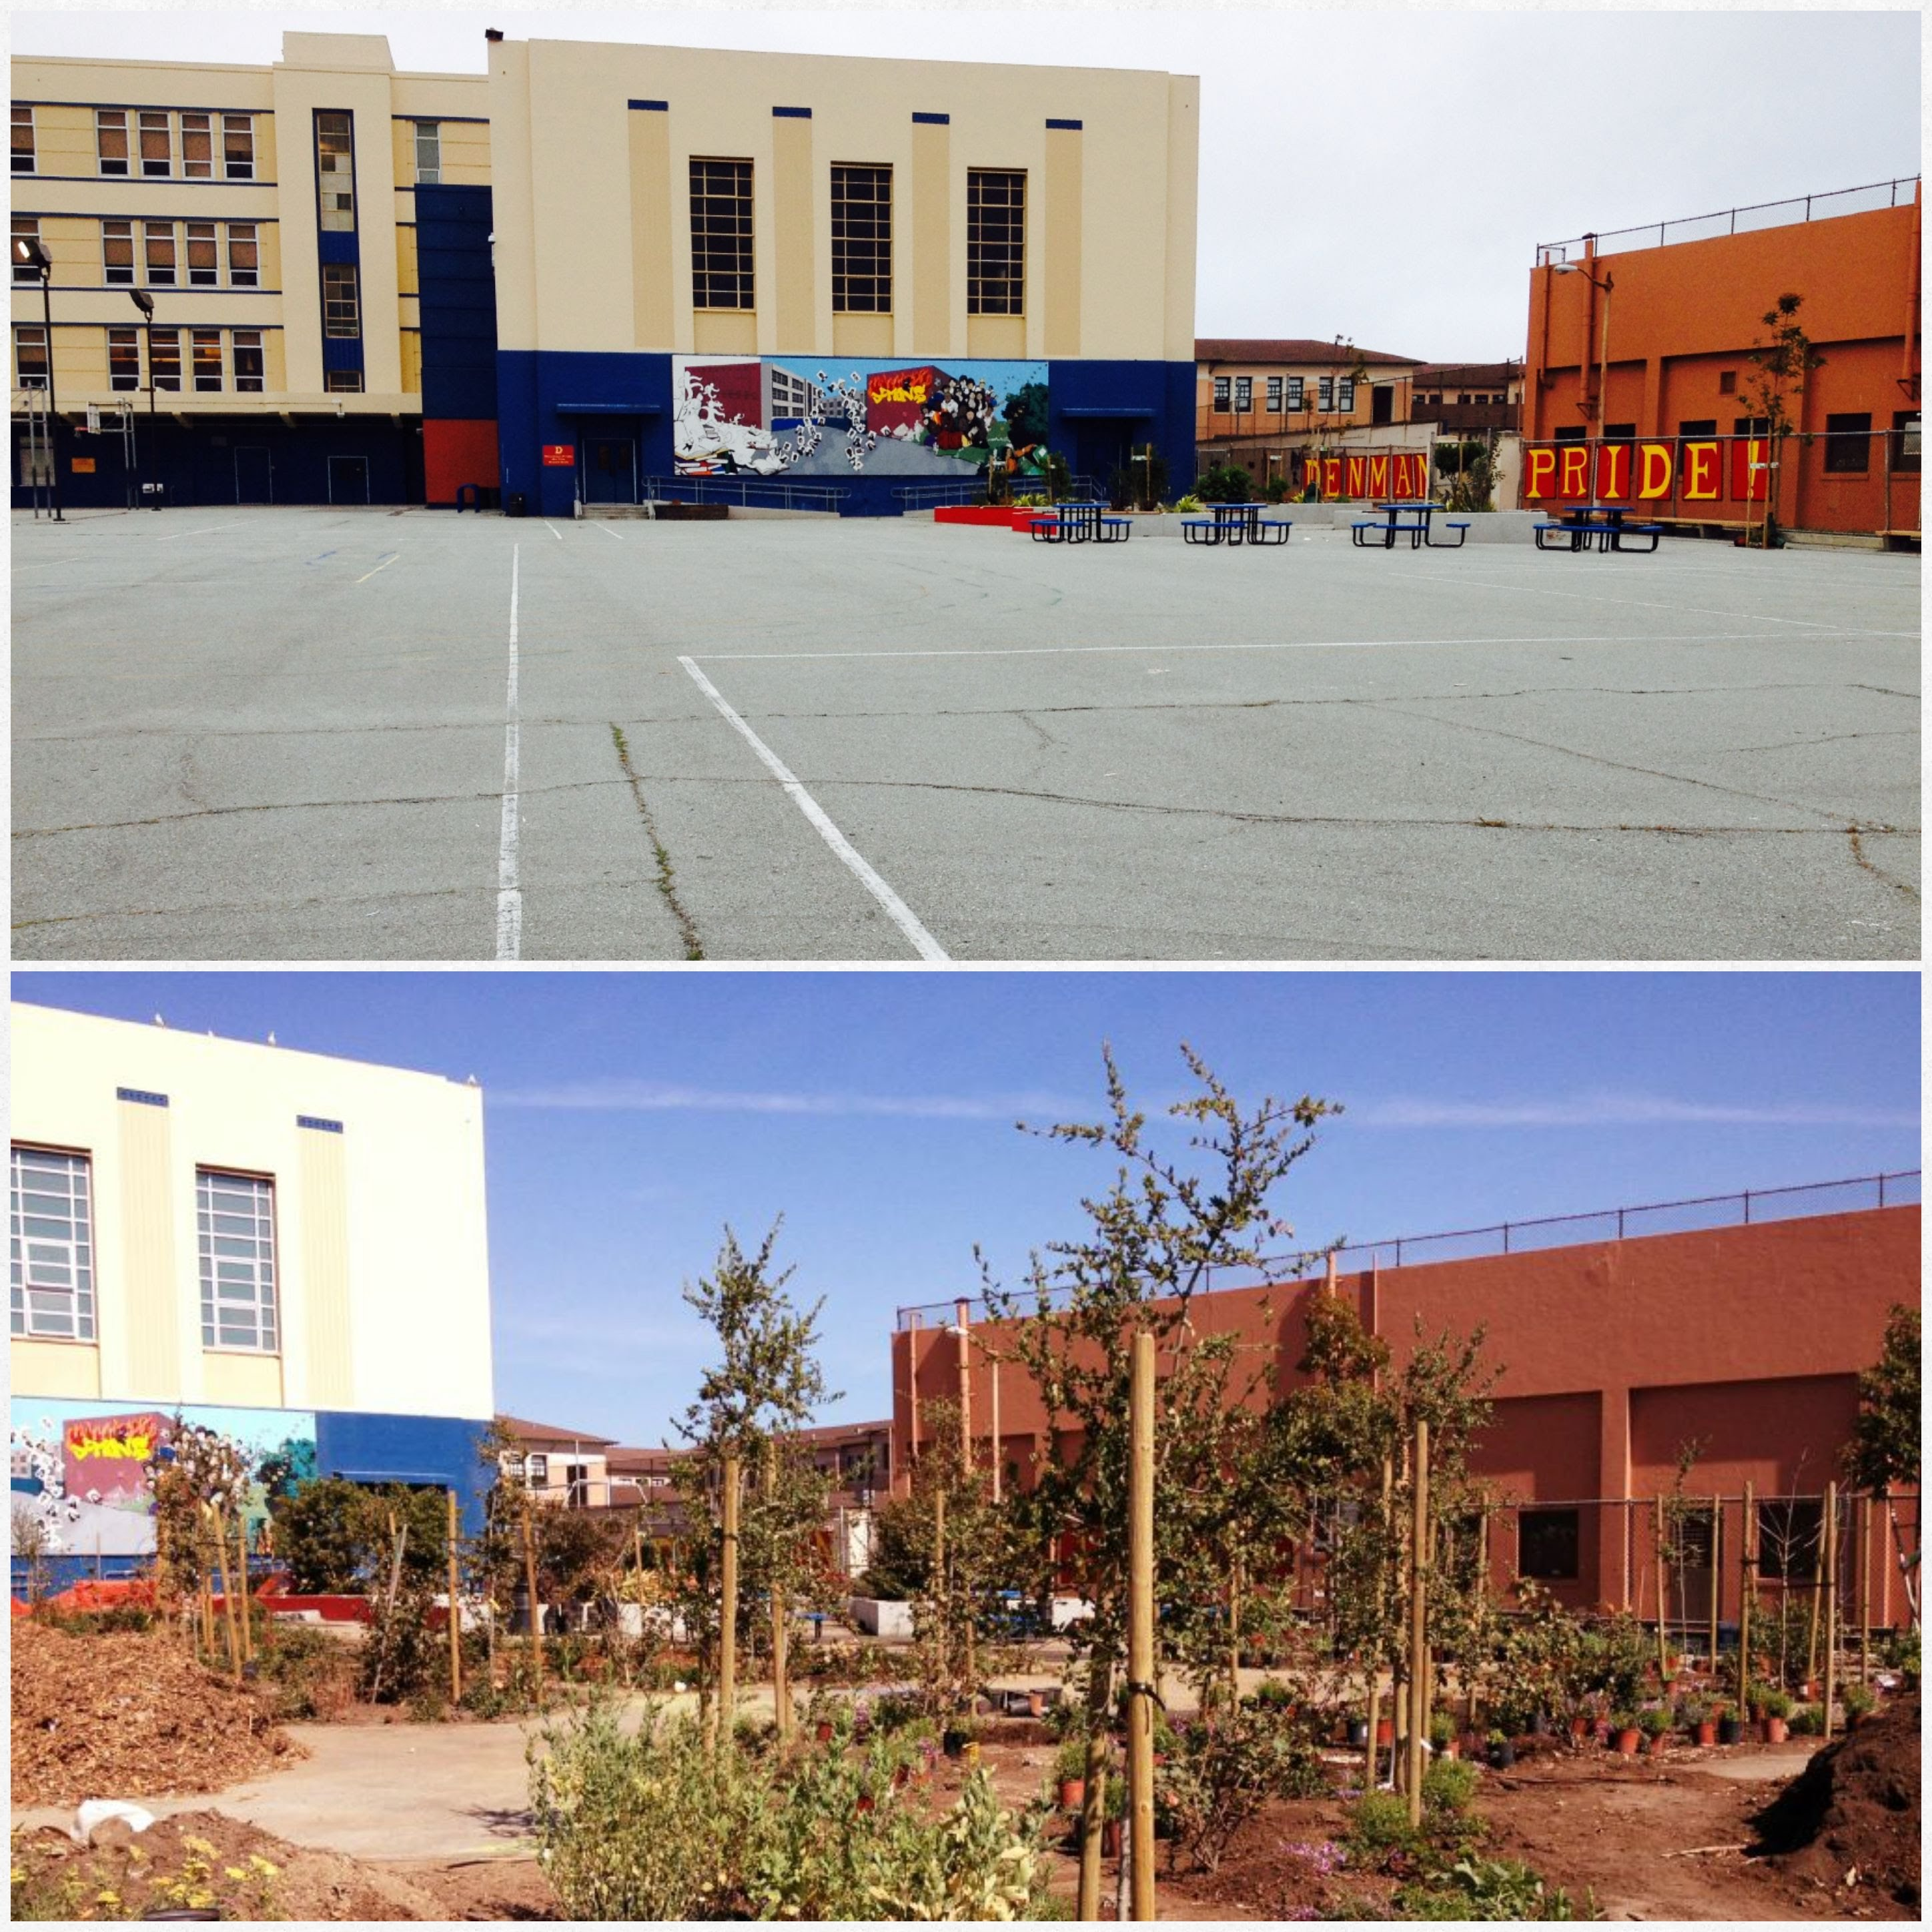 Transformation at Rear Yard of James Denman Middle School